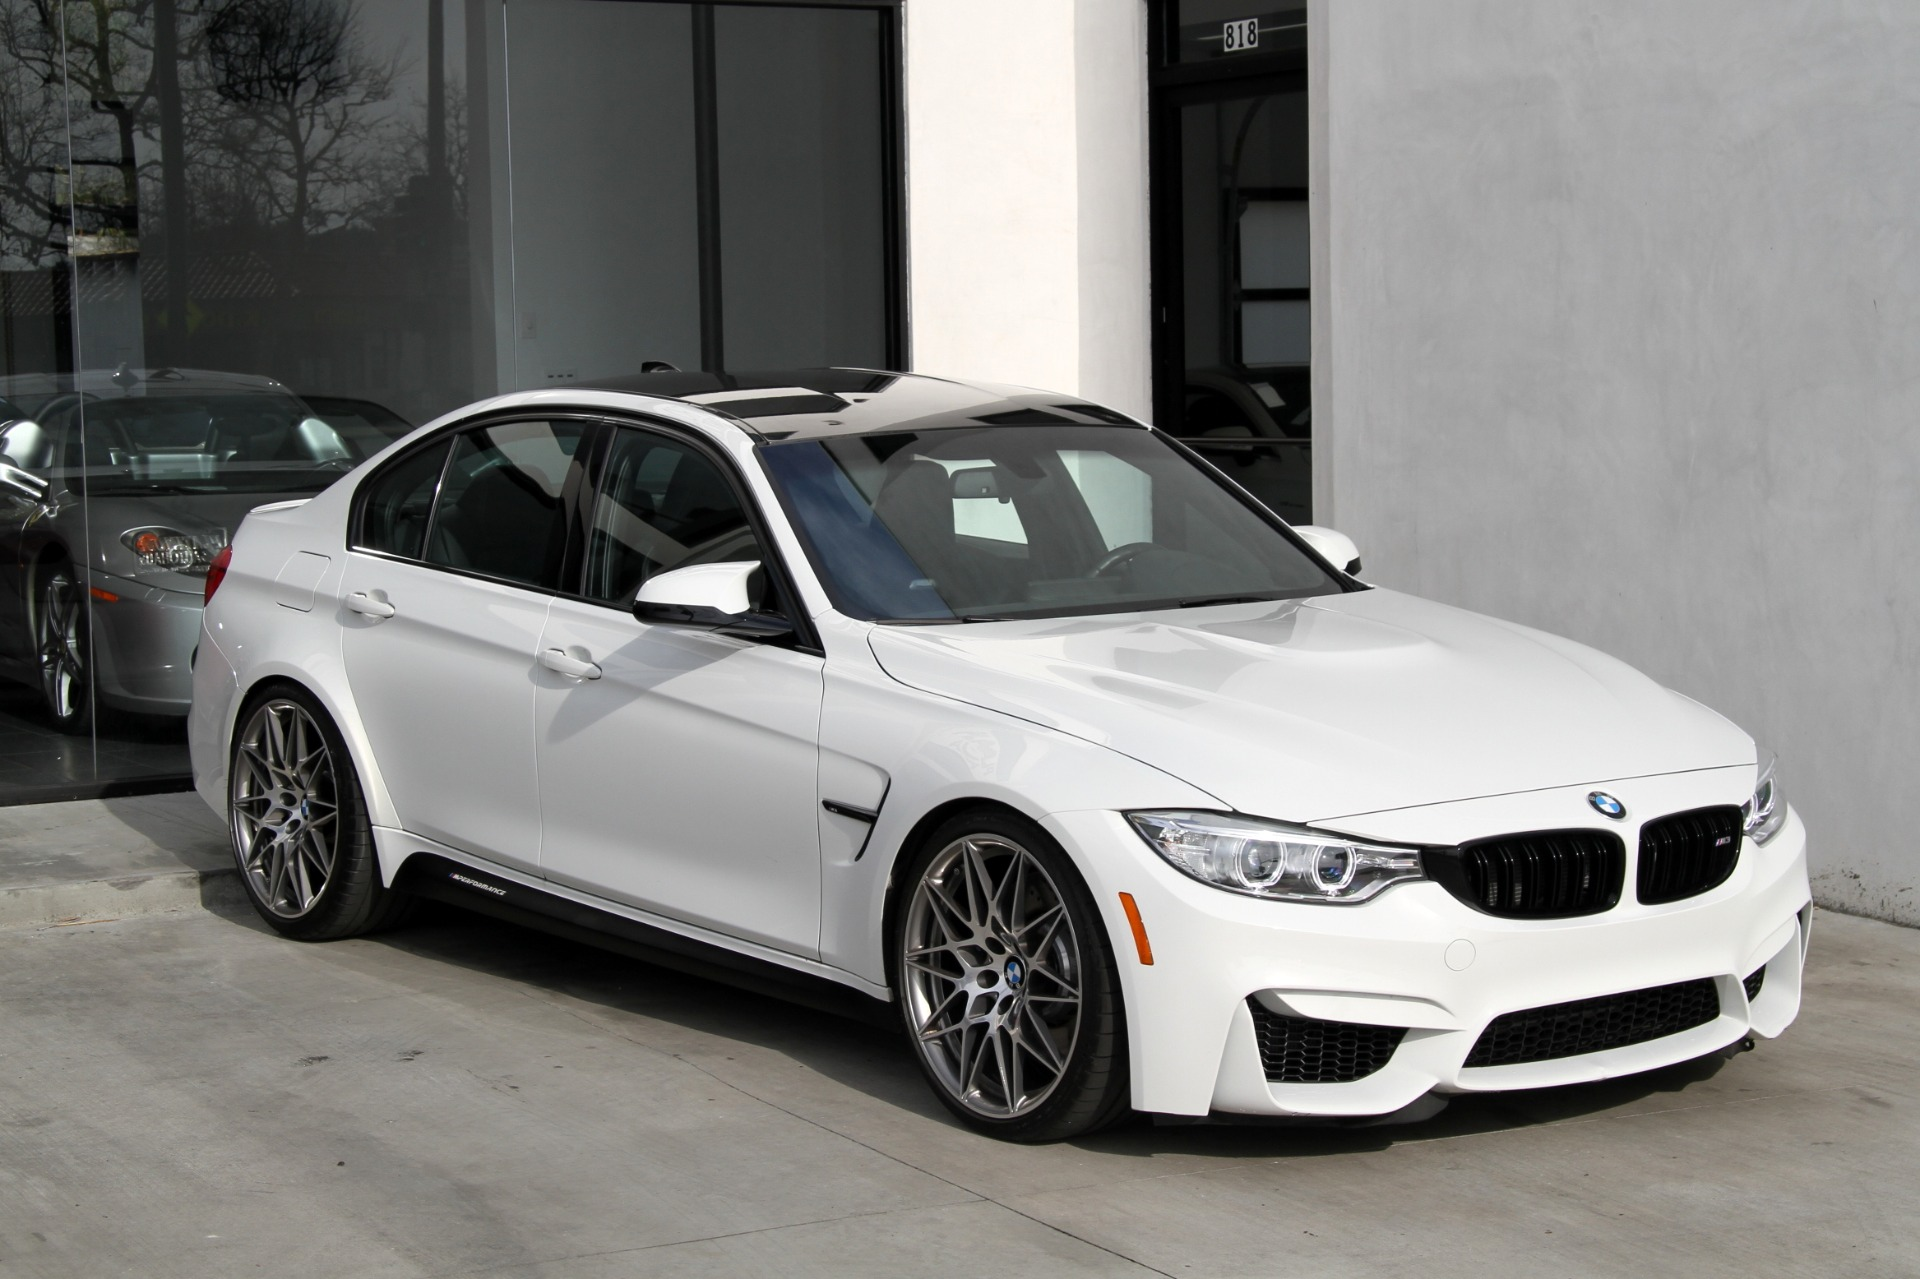 Bmw Dealer Near Me >> 2017 BMW M3 *** COMPETITION PACKAGE *** Stock # 6094 for sale near Redondo Beach, CA | CA BMW Dealer